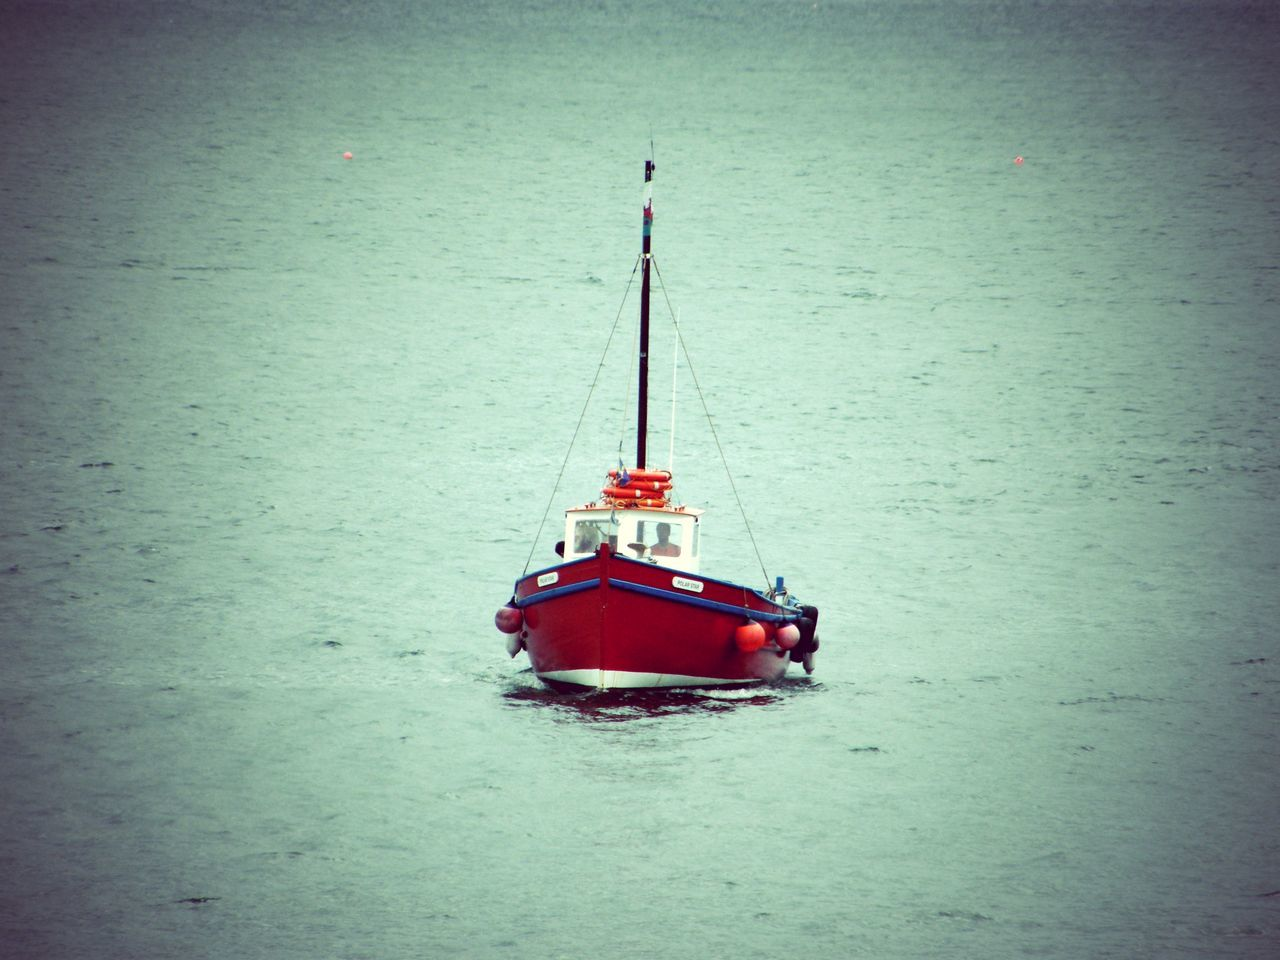 Beauty In Nature Day Mode Of Transport Nature Nautical Vessel No People Outdoors Pembrokeshire Pembrokeshire Coast Pembrokeshire Coastal Path Sea Tenby Tenby Harbour Transportation Water The Red Boat